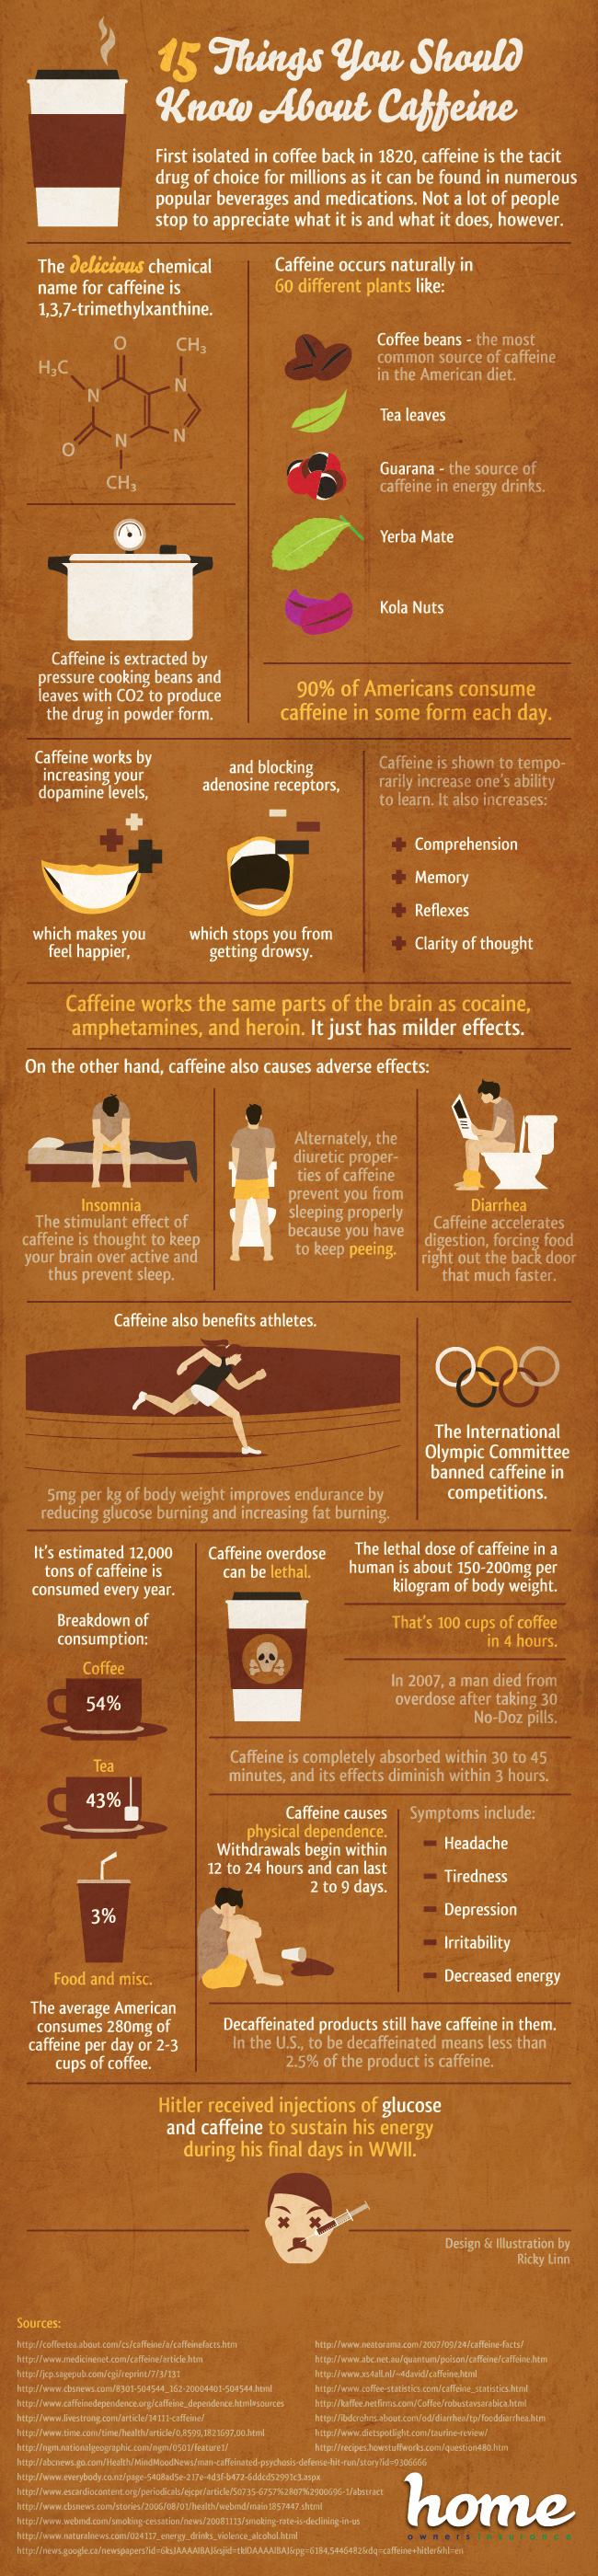 Interesting Facts About Caffeine